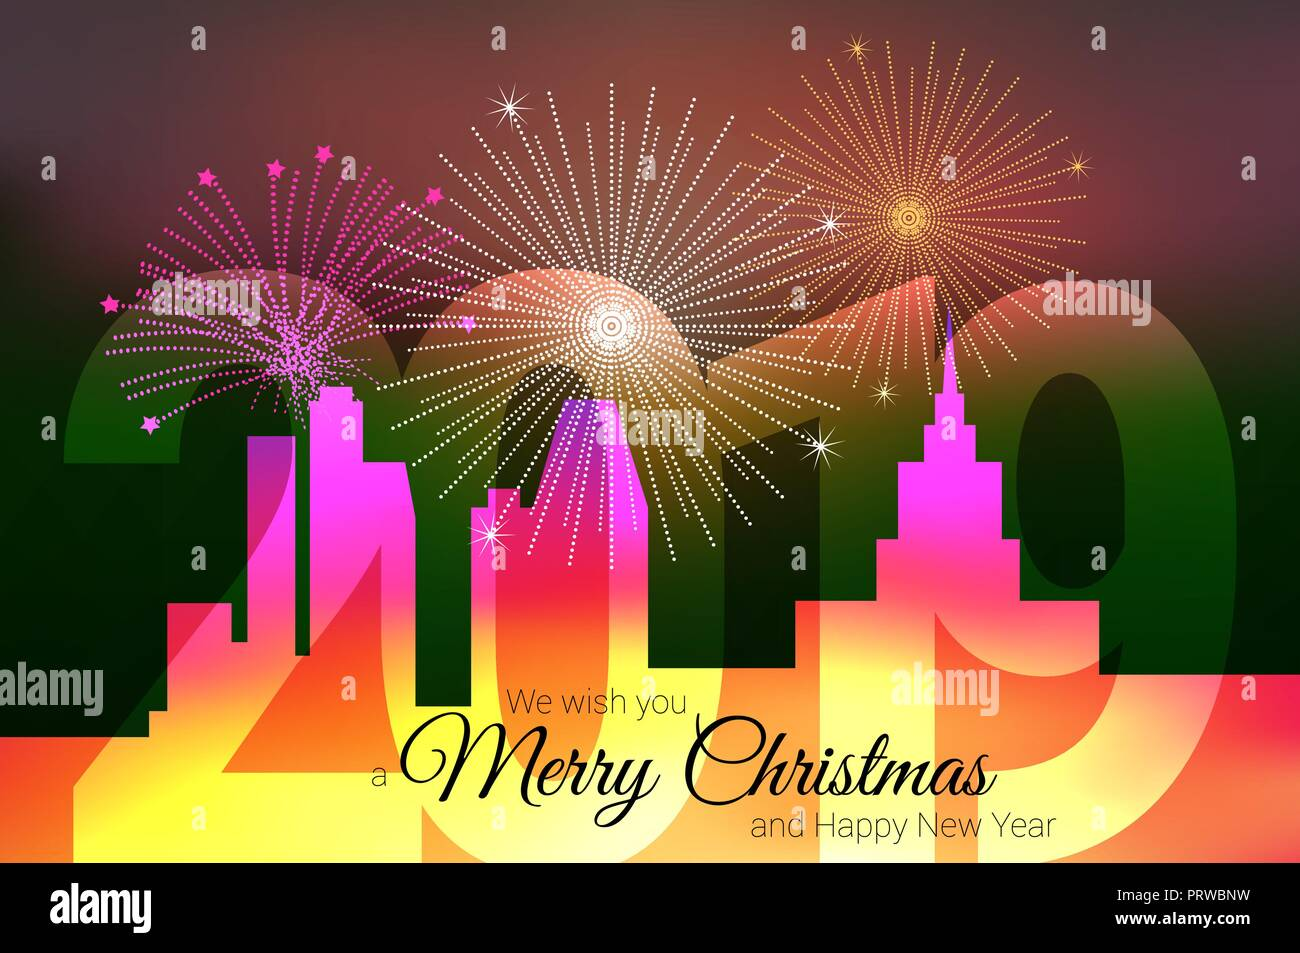 vector christmas greeting card template merry christmas and happy new year design elements resource for creating postcards calendars posters